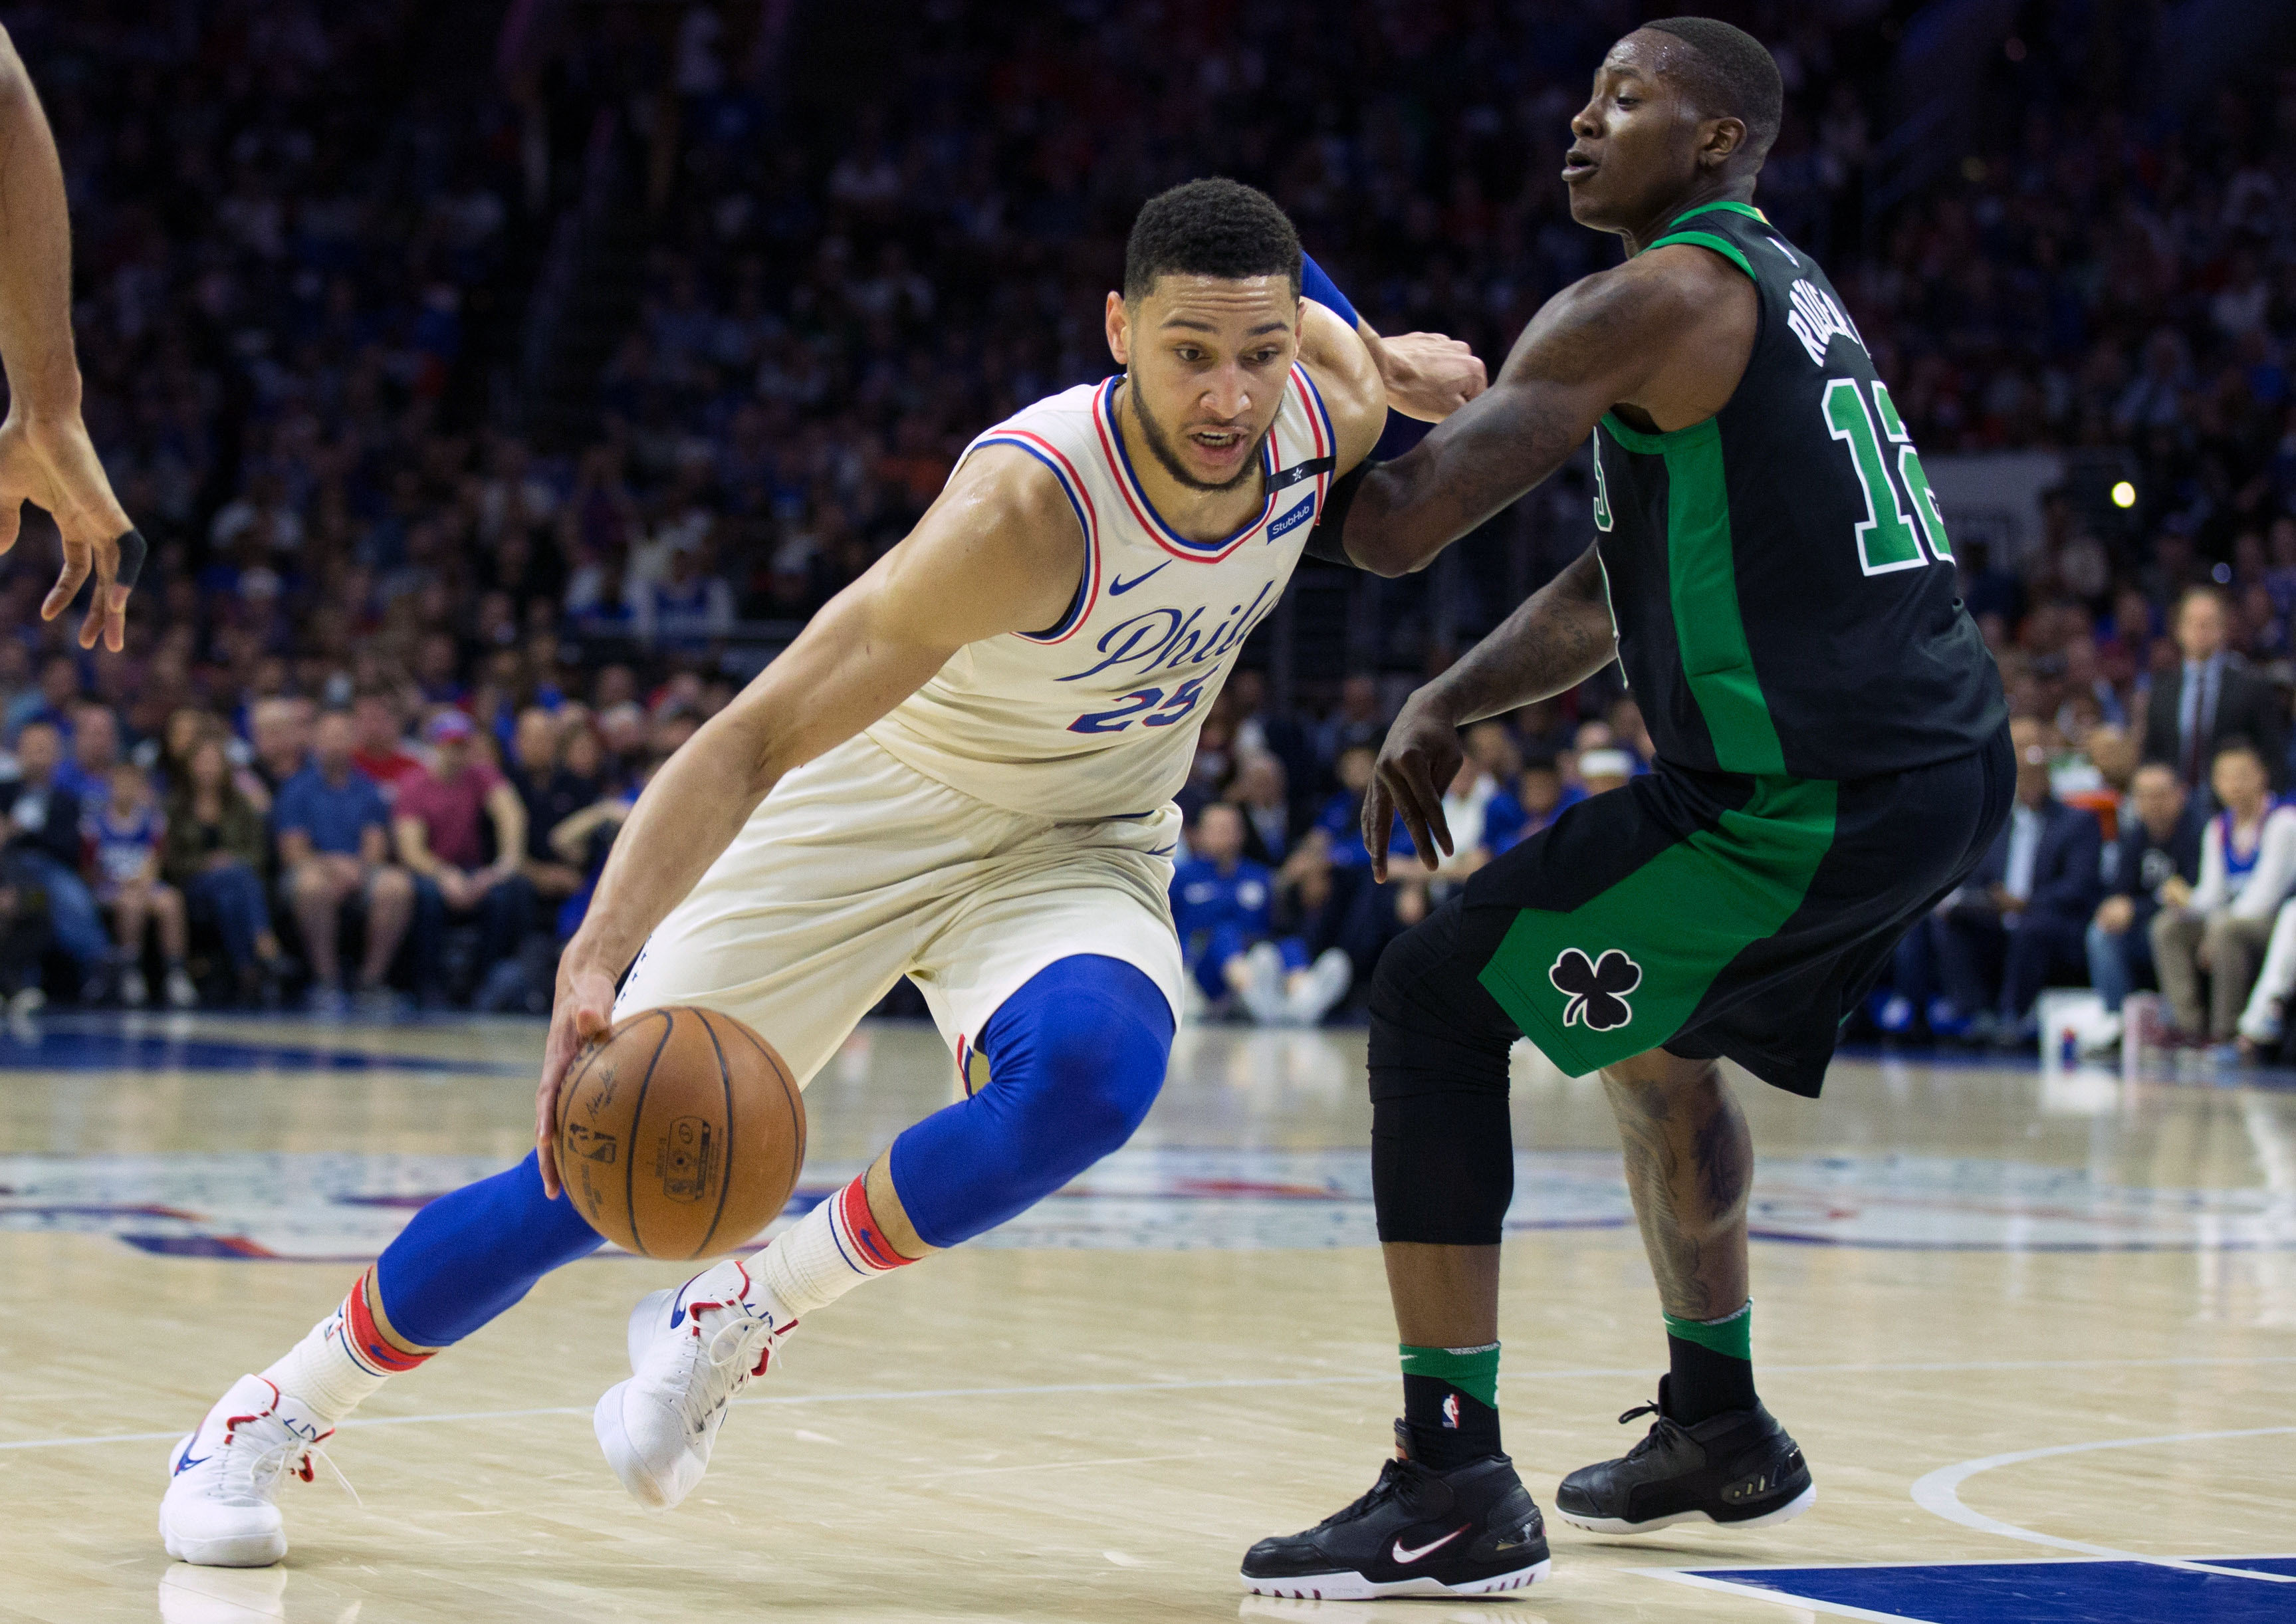 Kobe Bryant shares how he'd tinker with Ben Simmons' jump shot